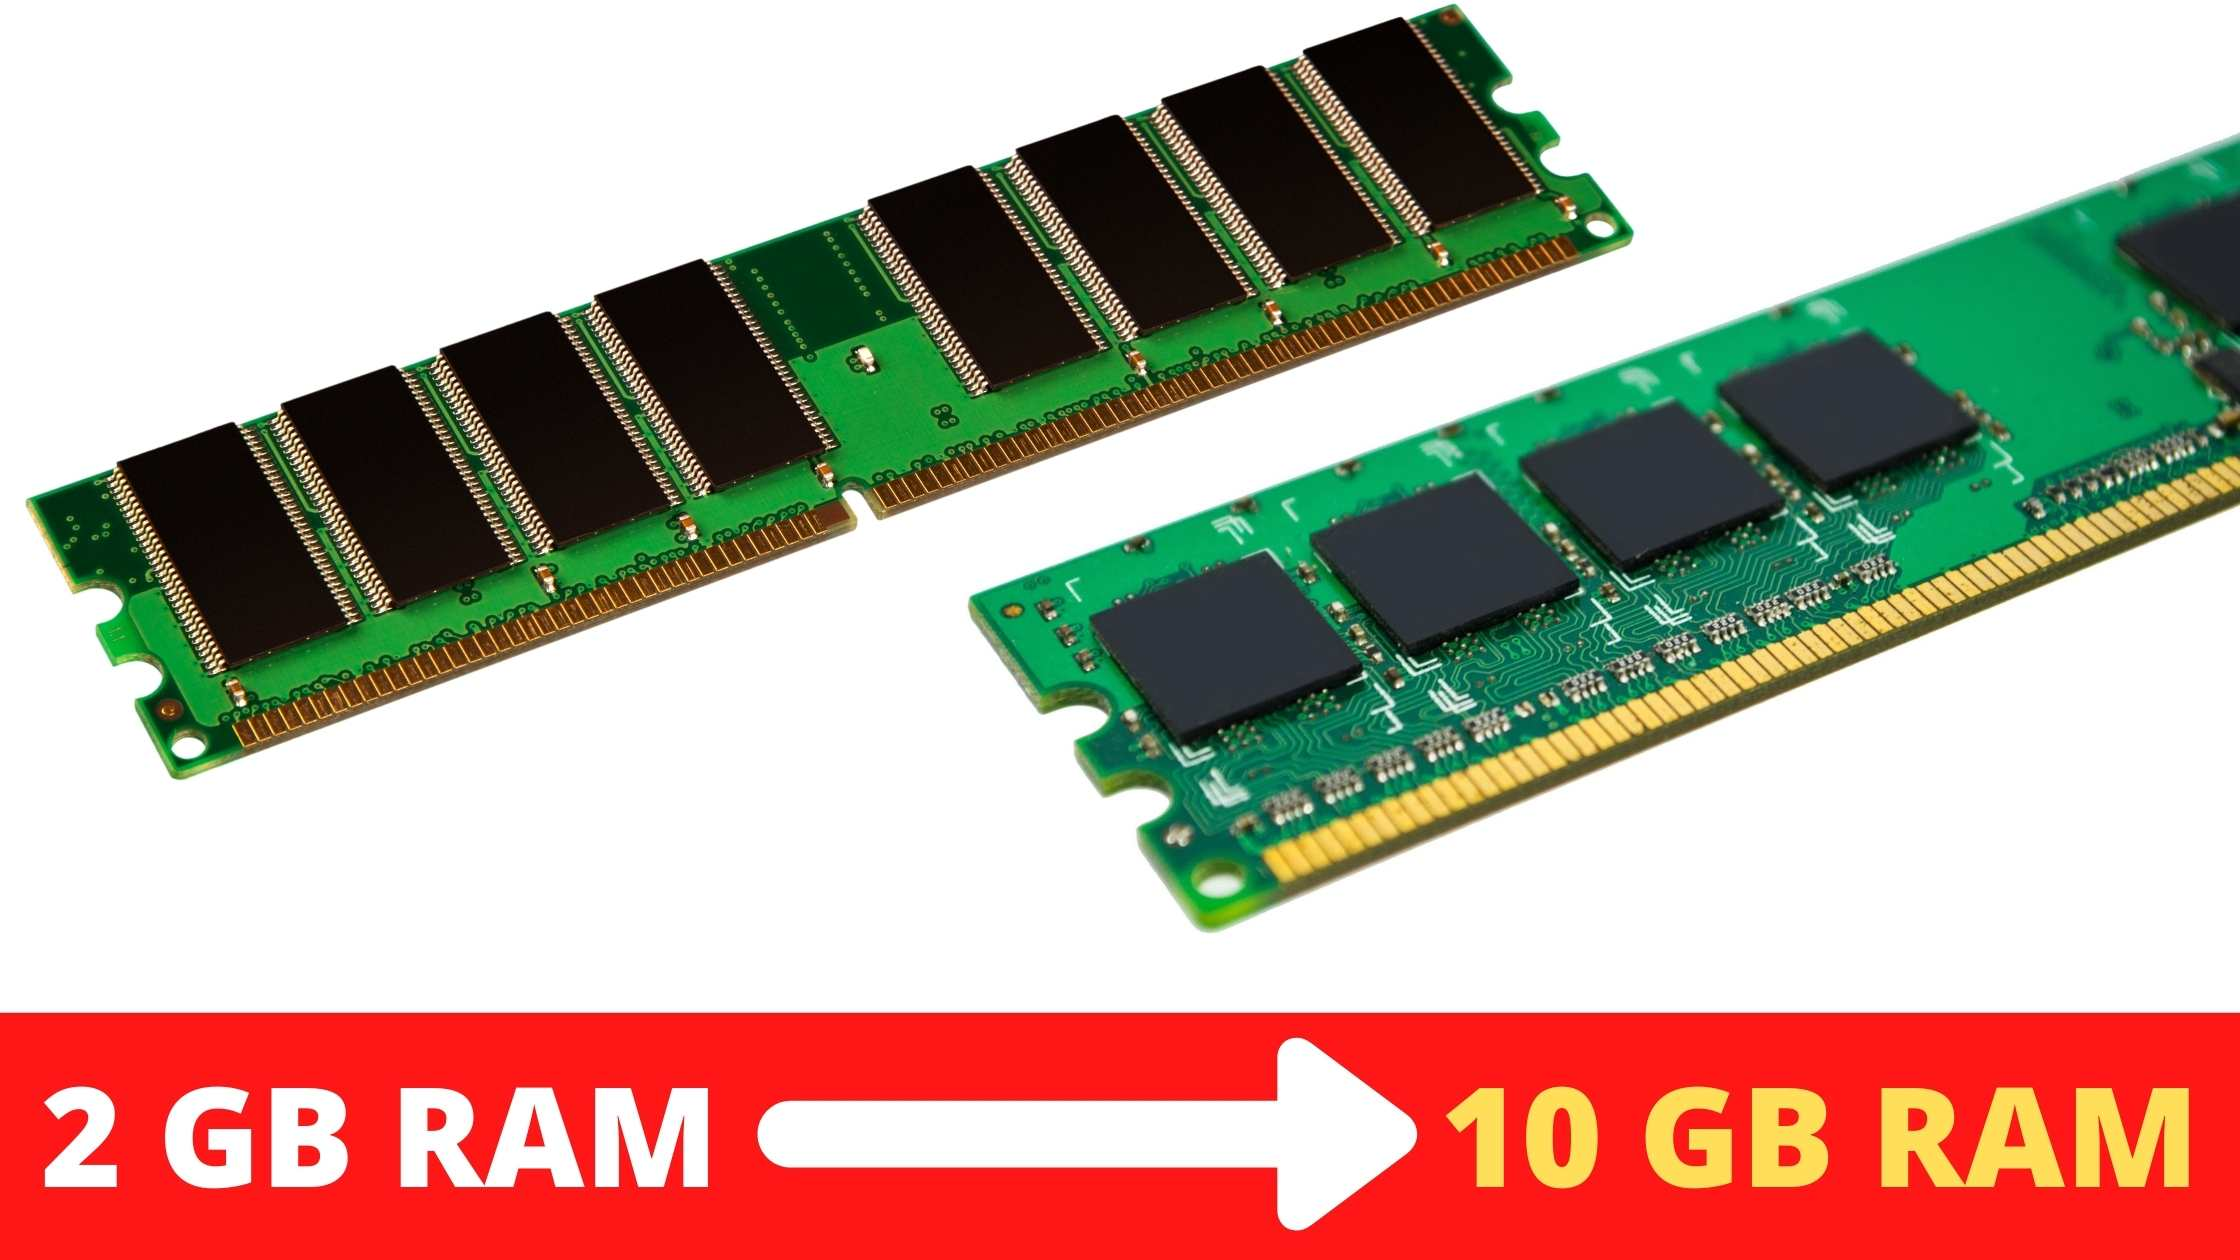 Download More Ram : How To Download More RAM on PC & VM (Virtual Machine)?